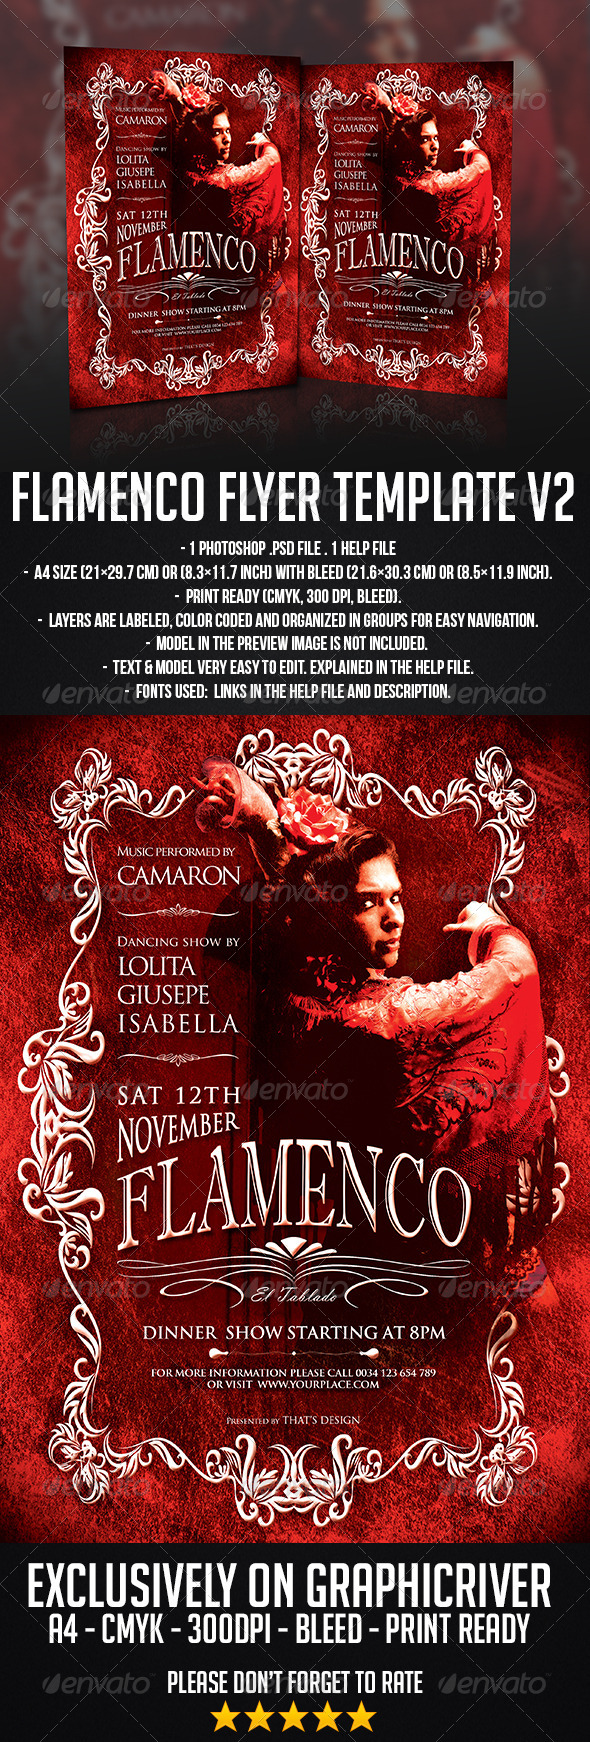 GraphicRiver Flamenco Flyer Template V2 6957683